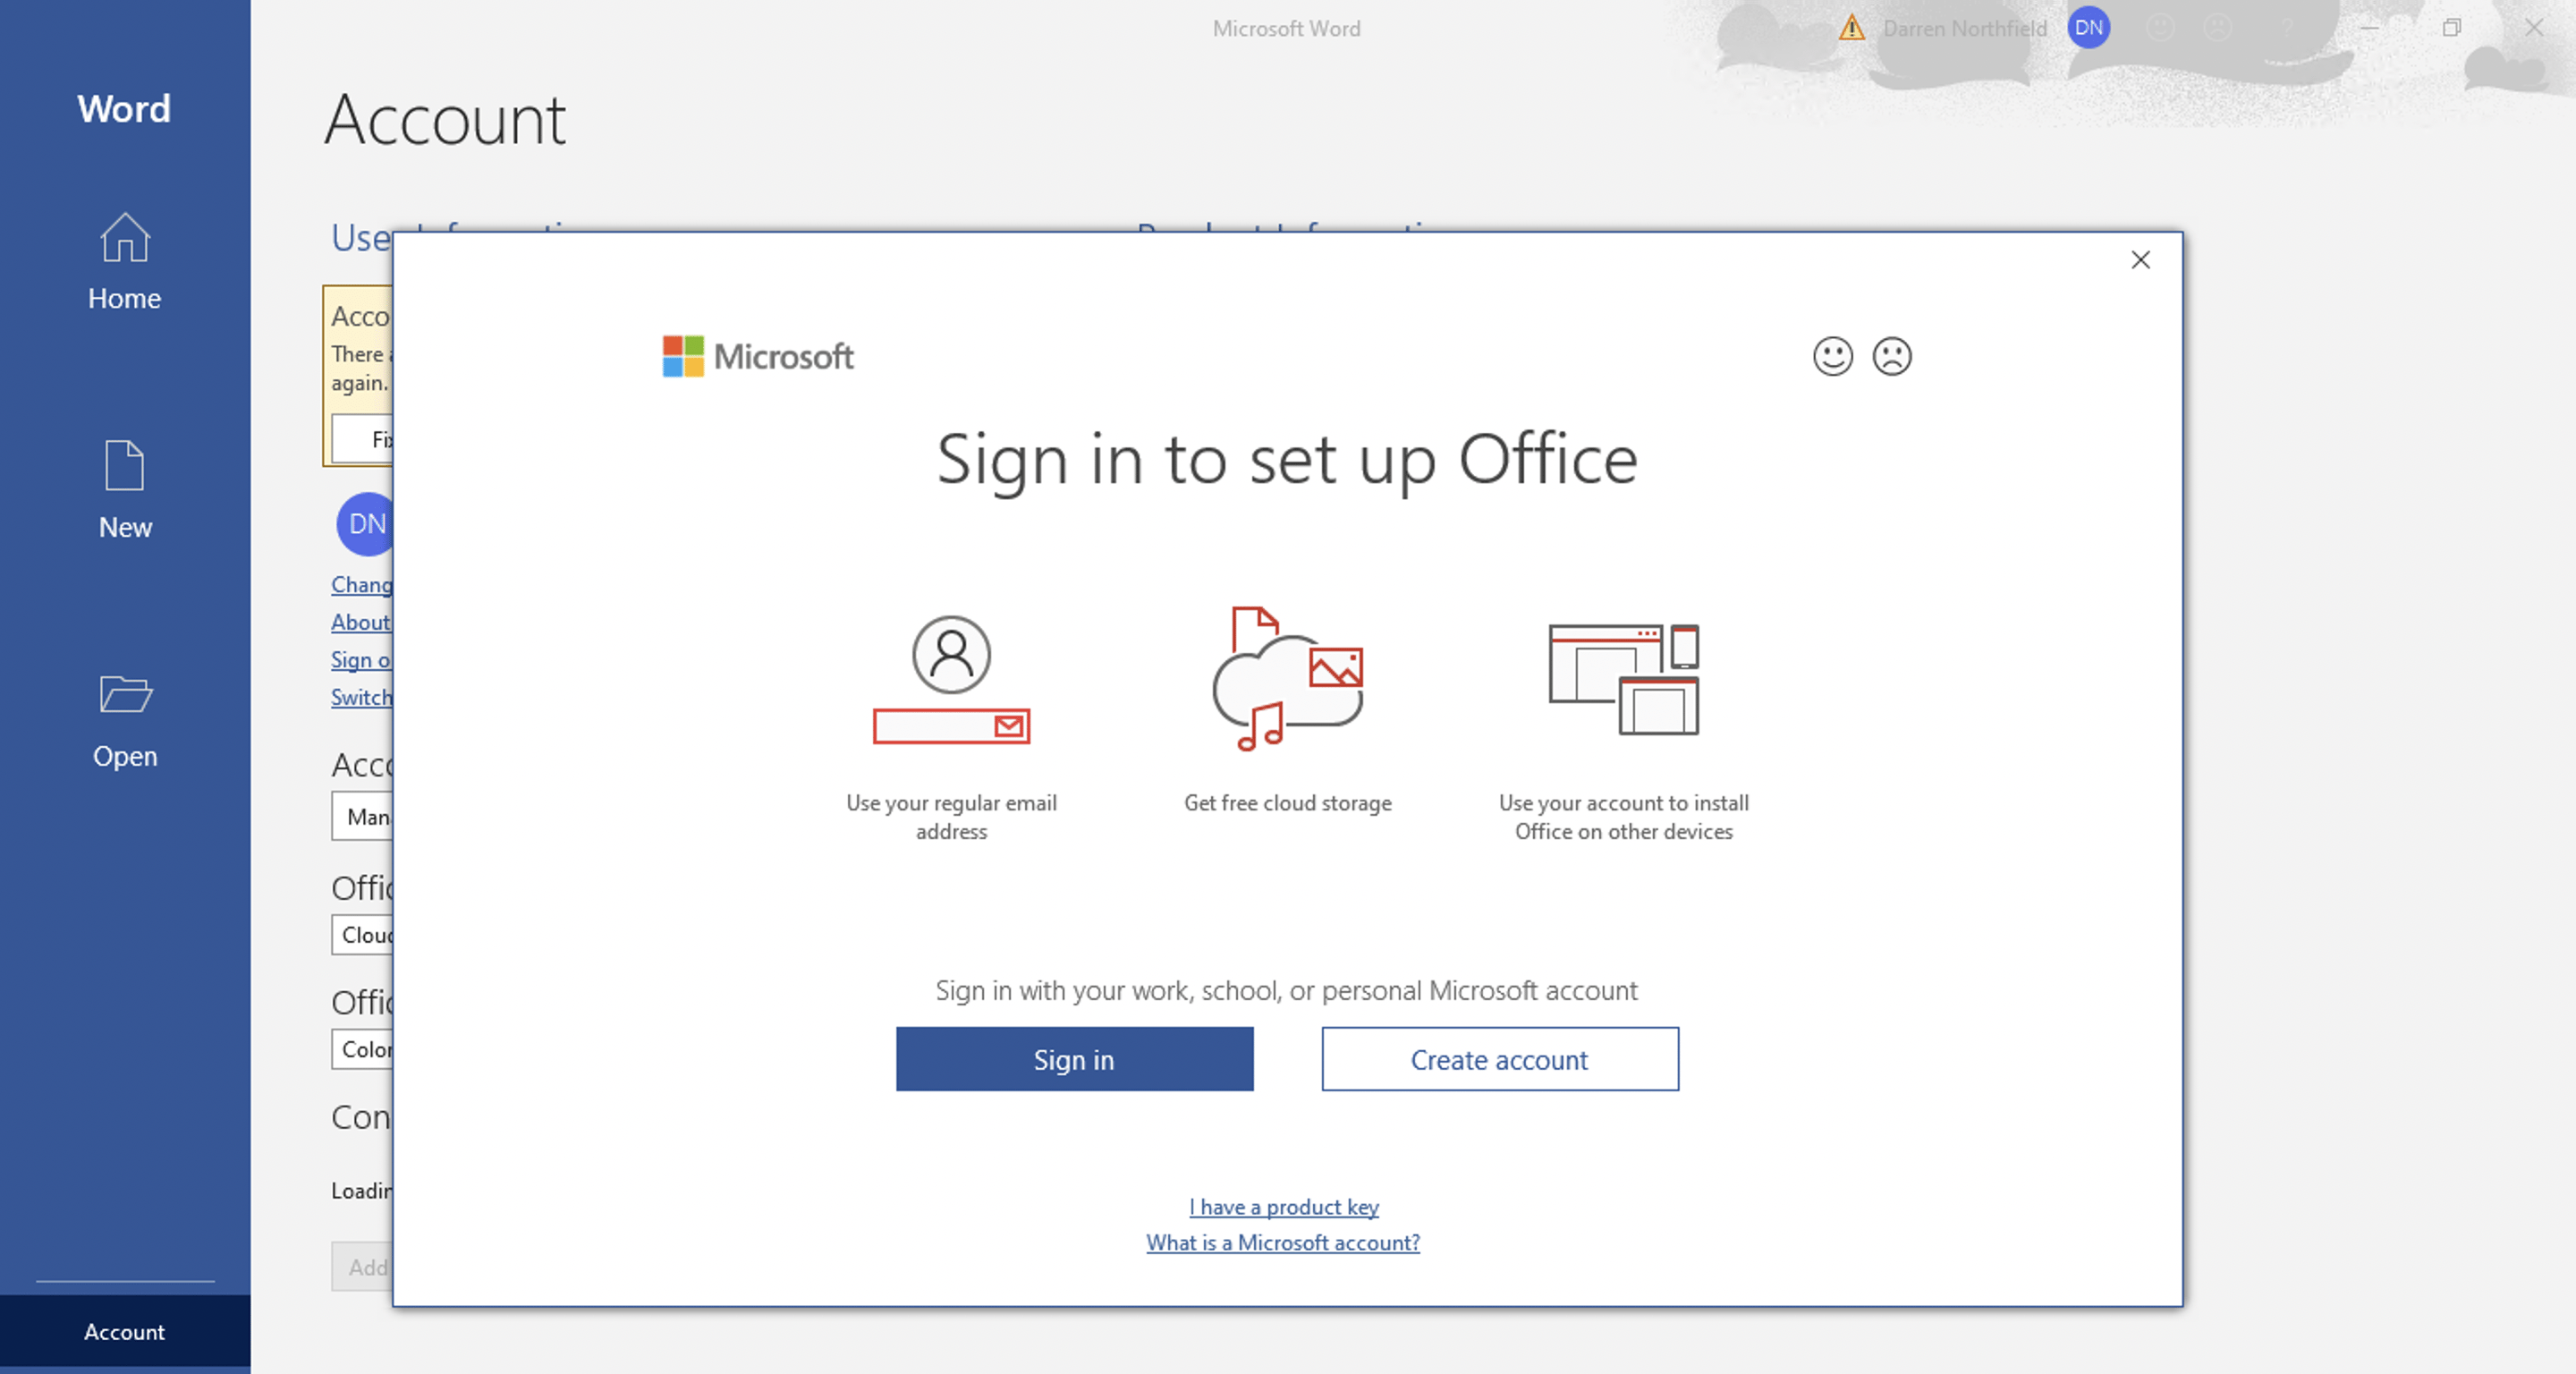 Microsoft 365 - Sign in to set up Office